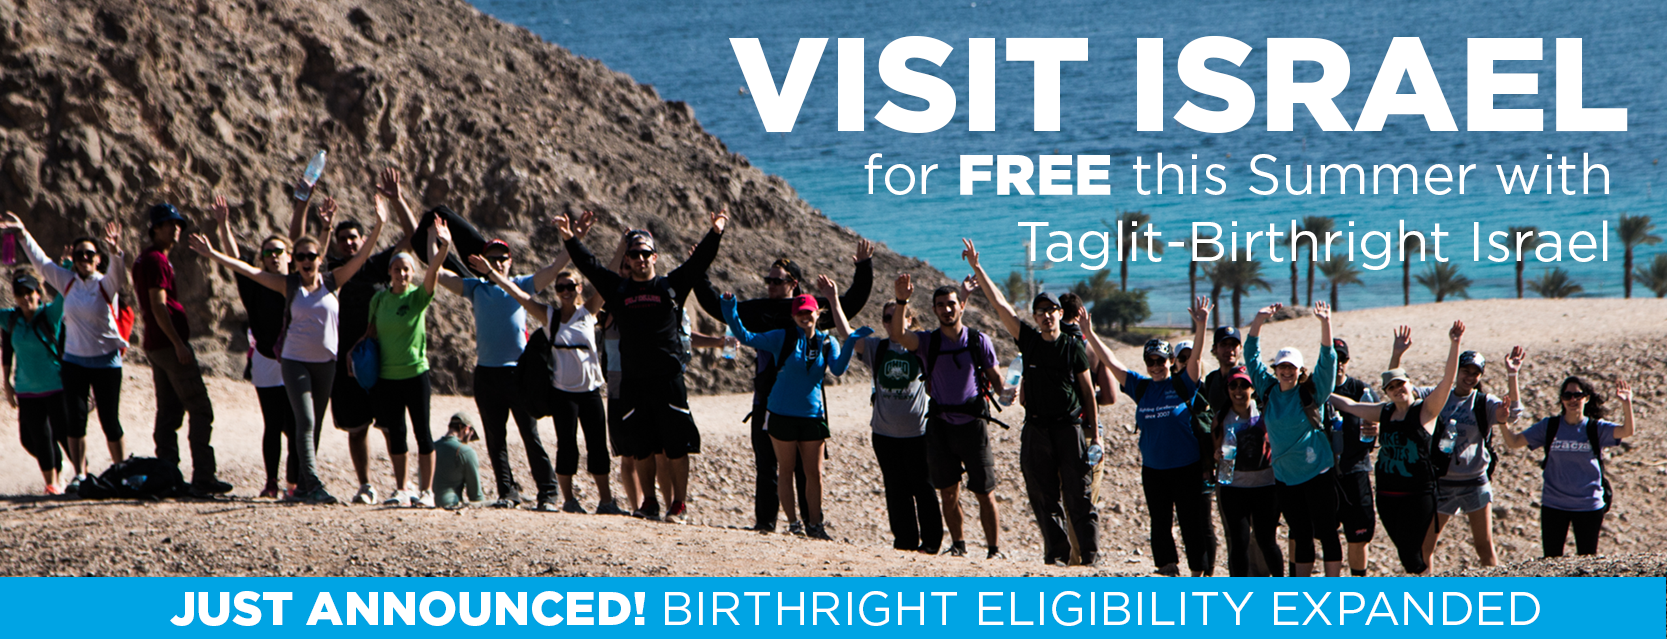 Birthright Eligibility Expanded